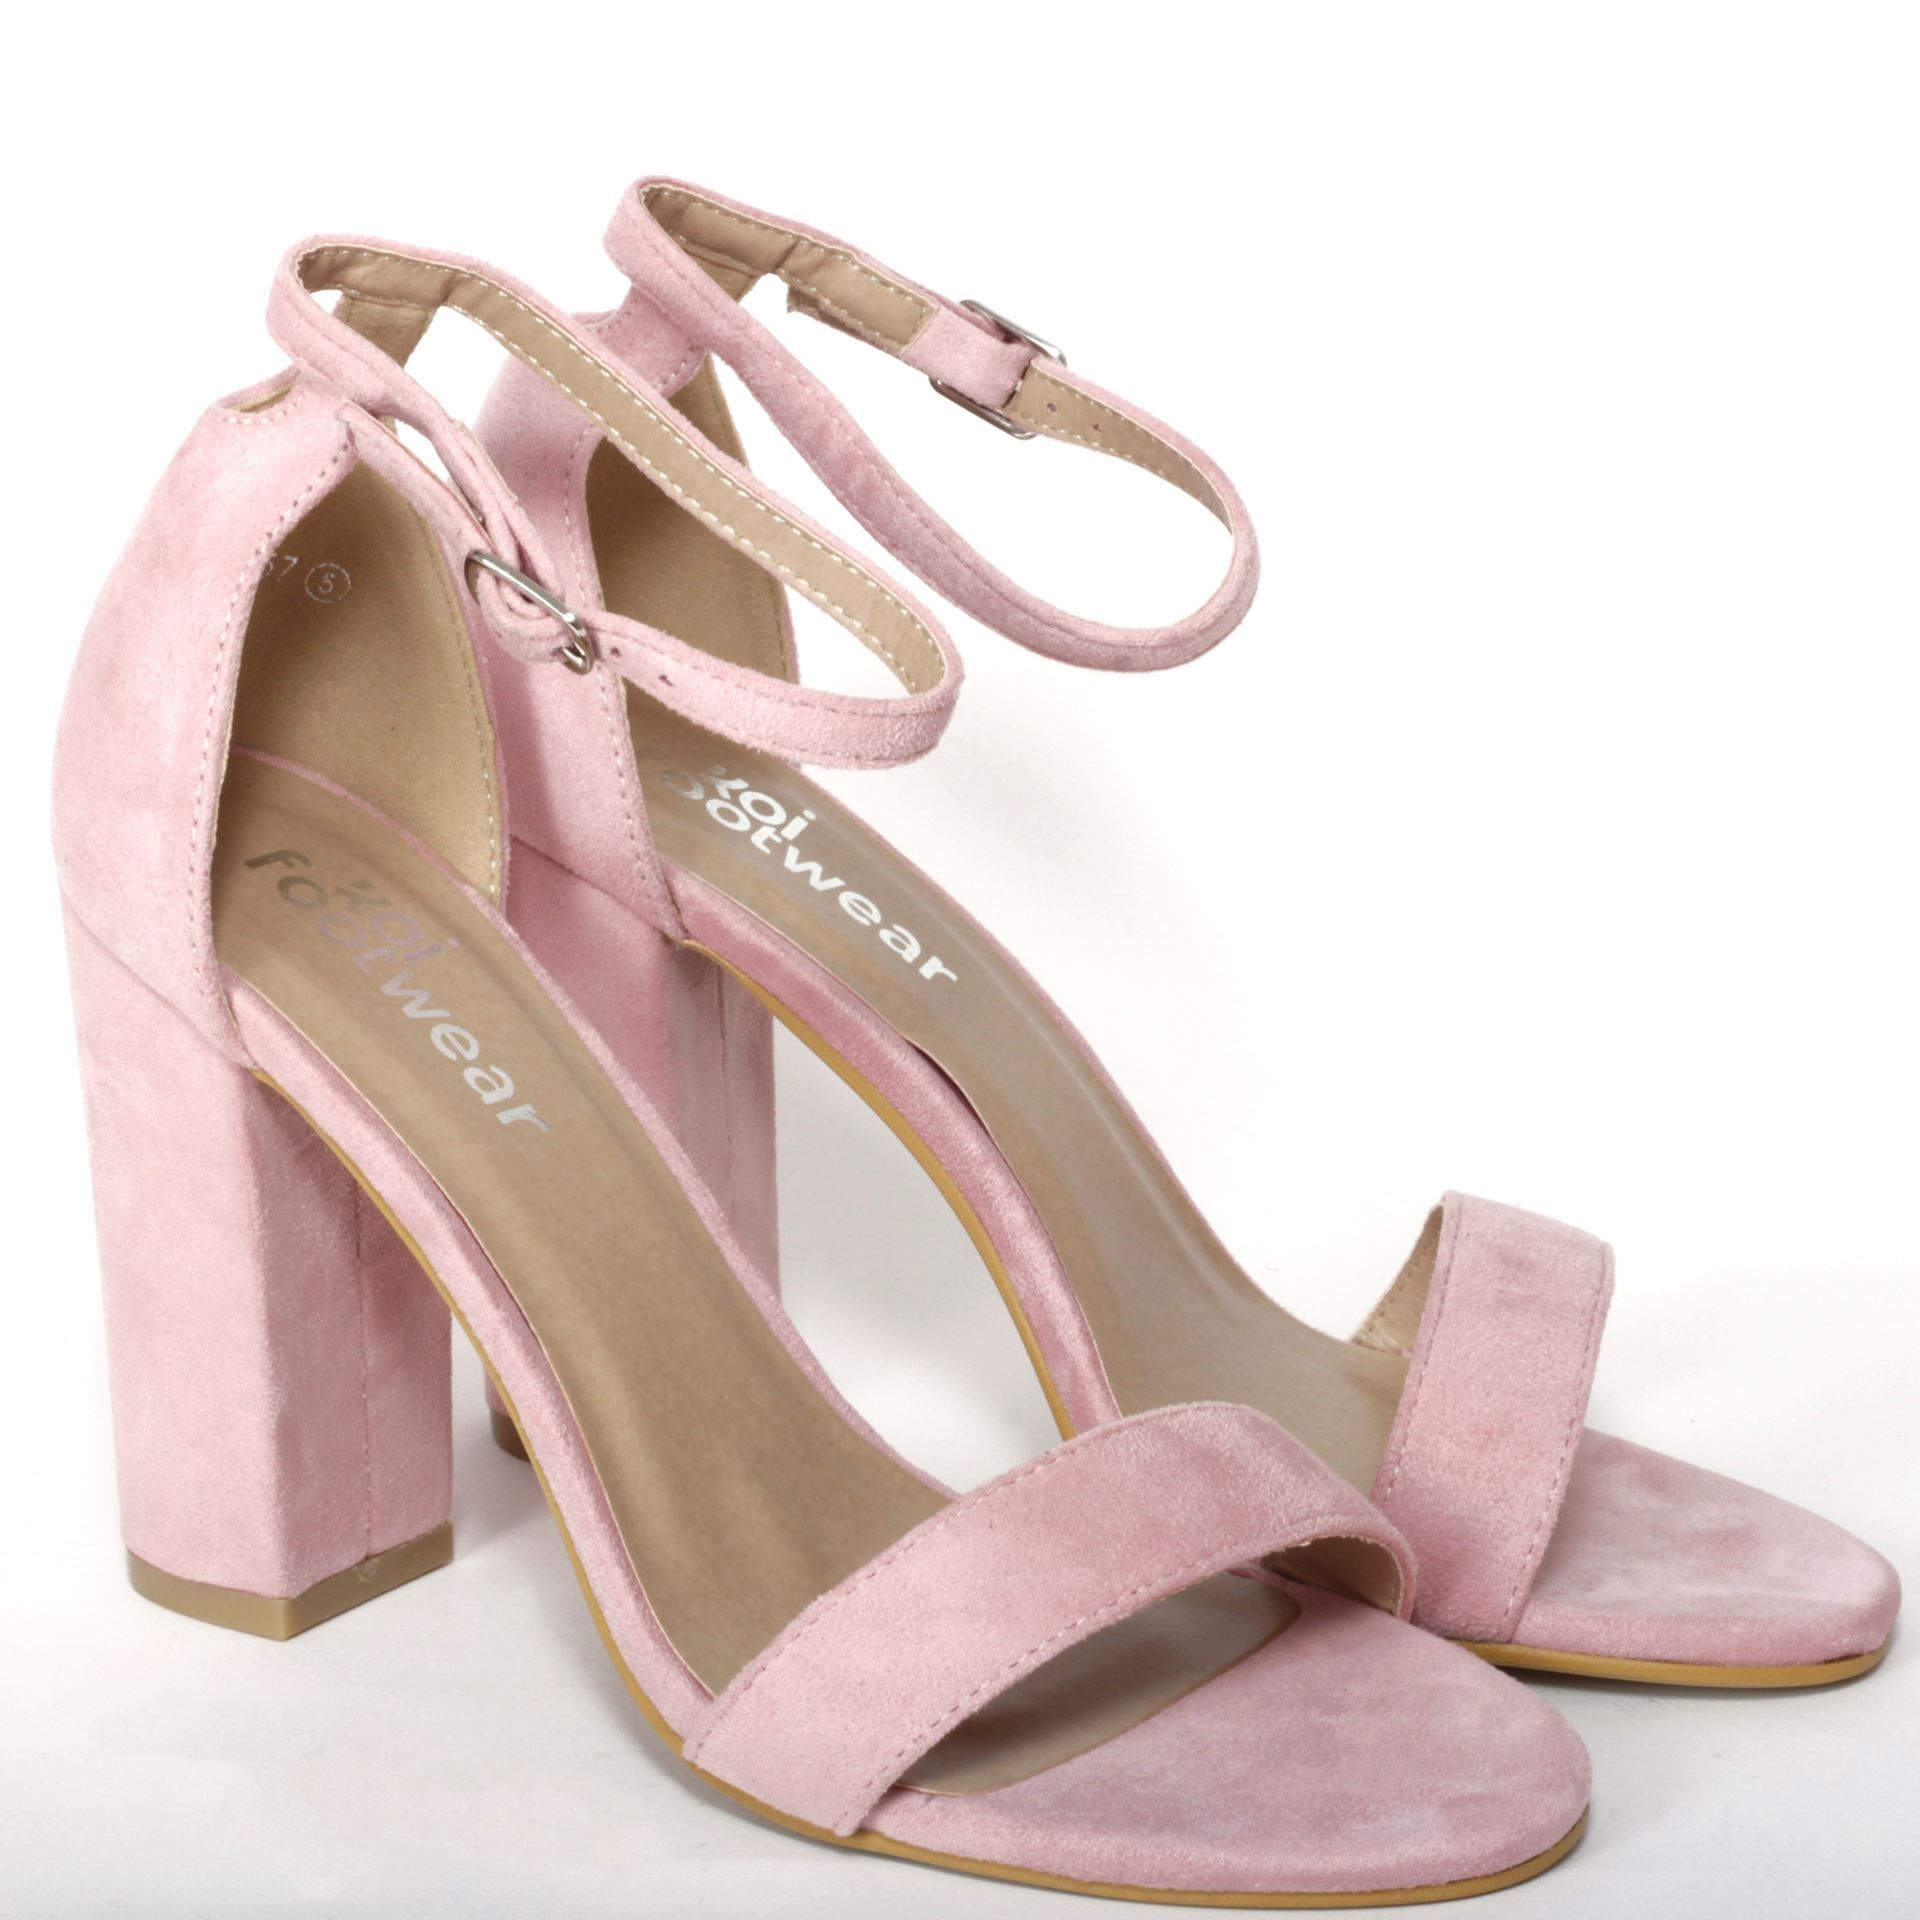 5f175d621178 Korkys Korky s pink heels - pair with a white flowy dress or some denim mom  jeans